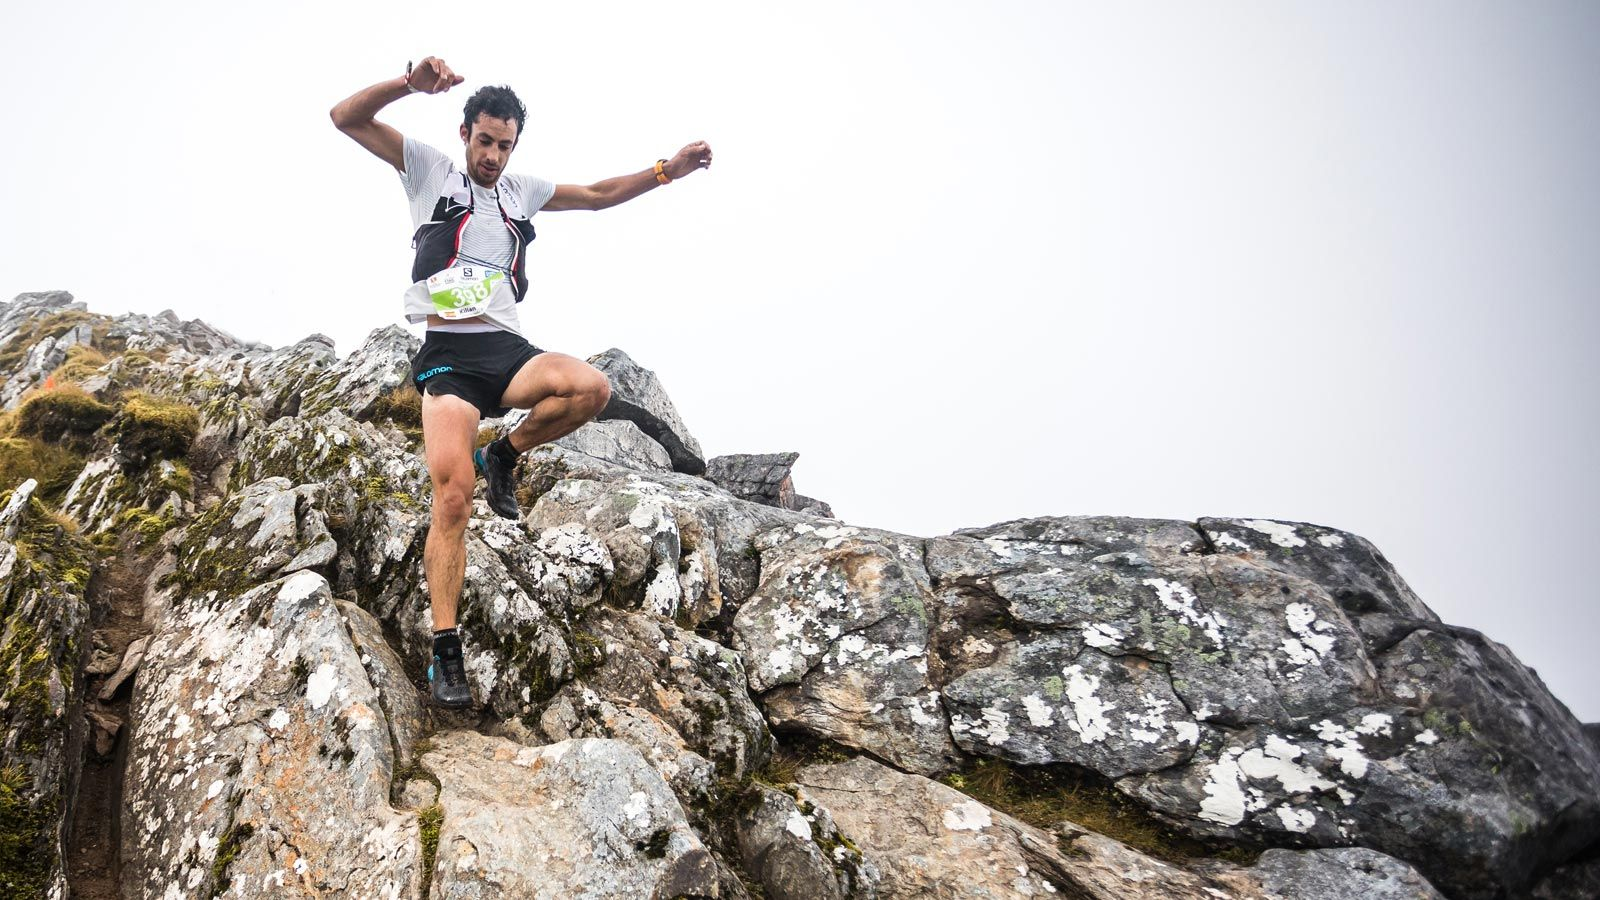 kilian-jornet-ring-of-steall-skyrace-golden-trail-series-2